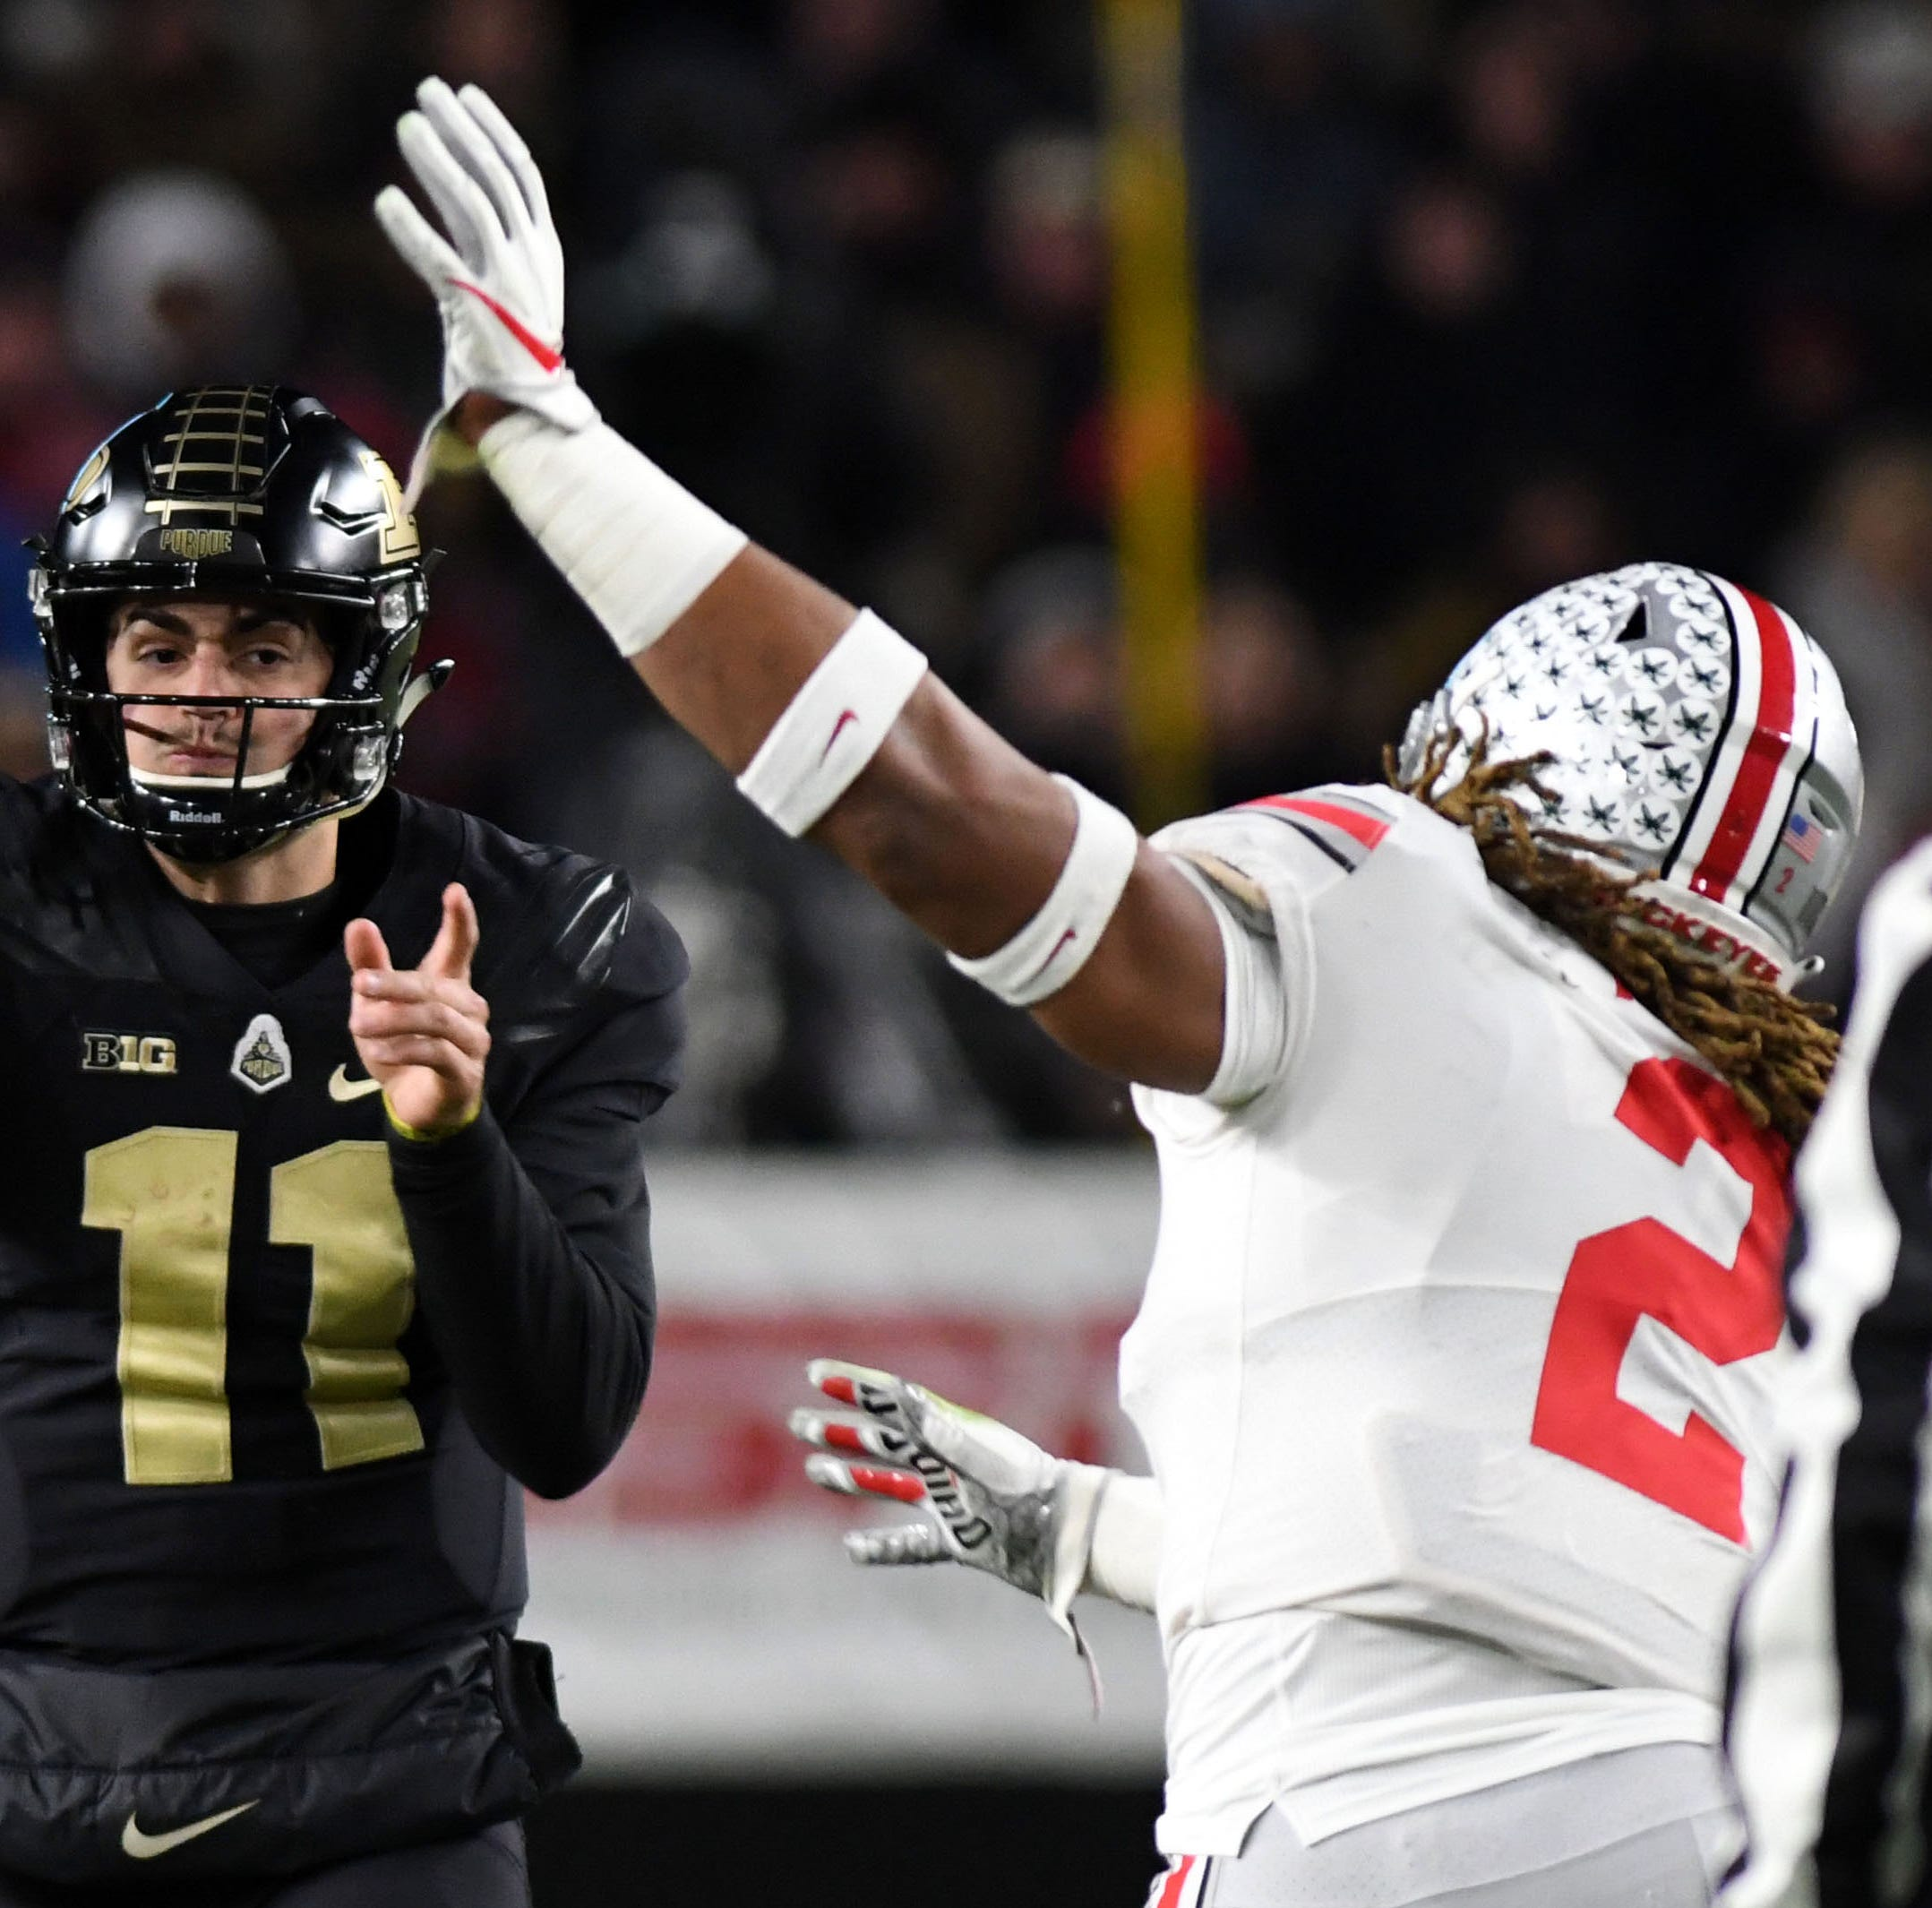 Purdue football beat Ohio State with Tyler Trent watching. And everyone loves it.